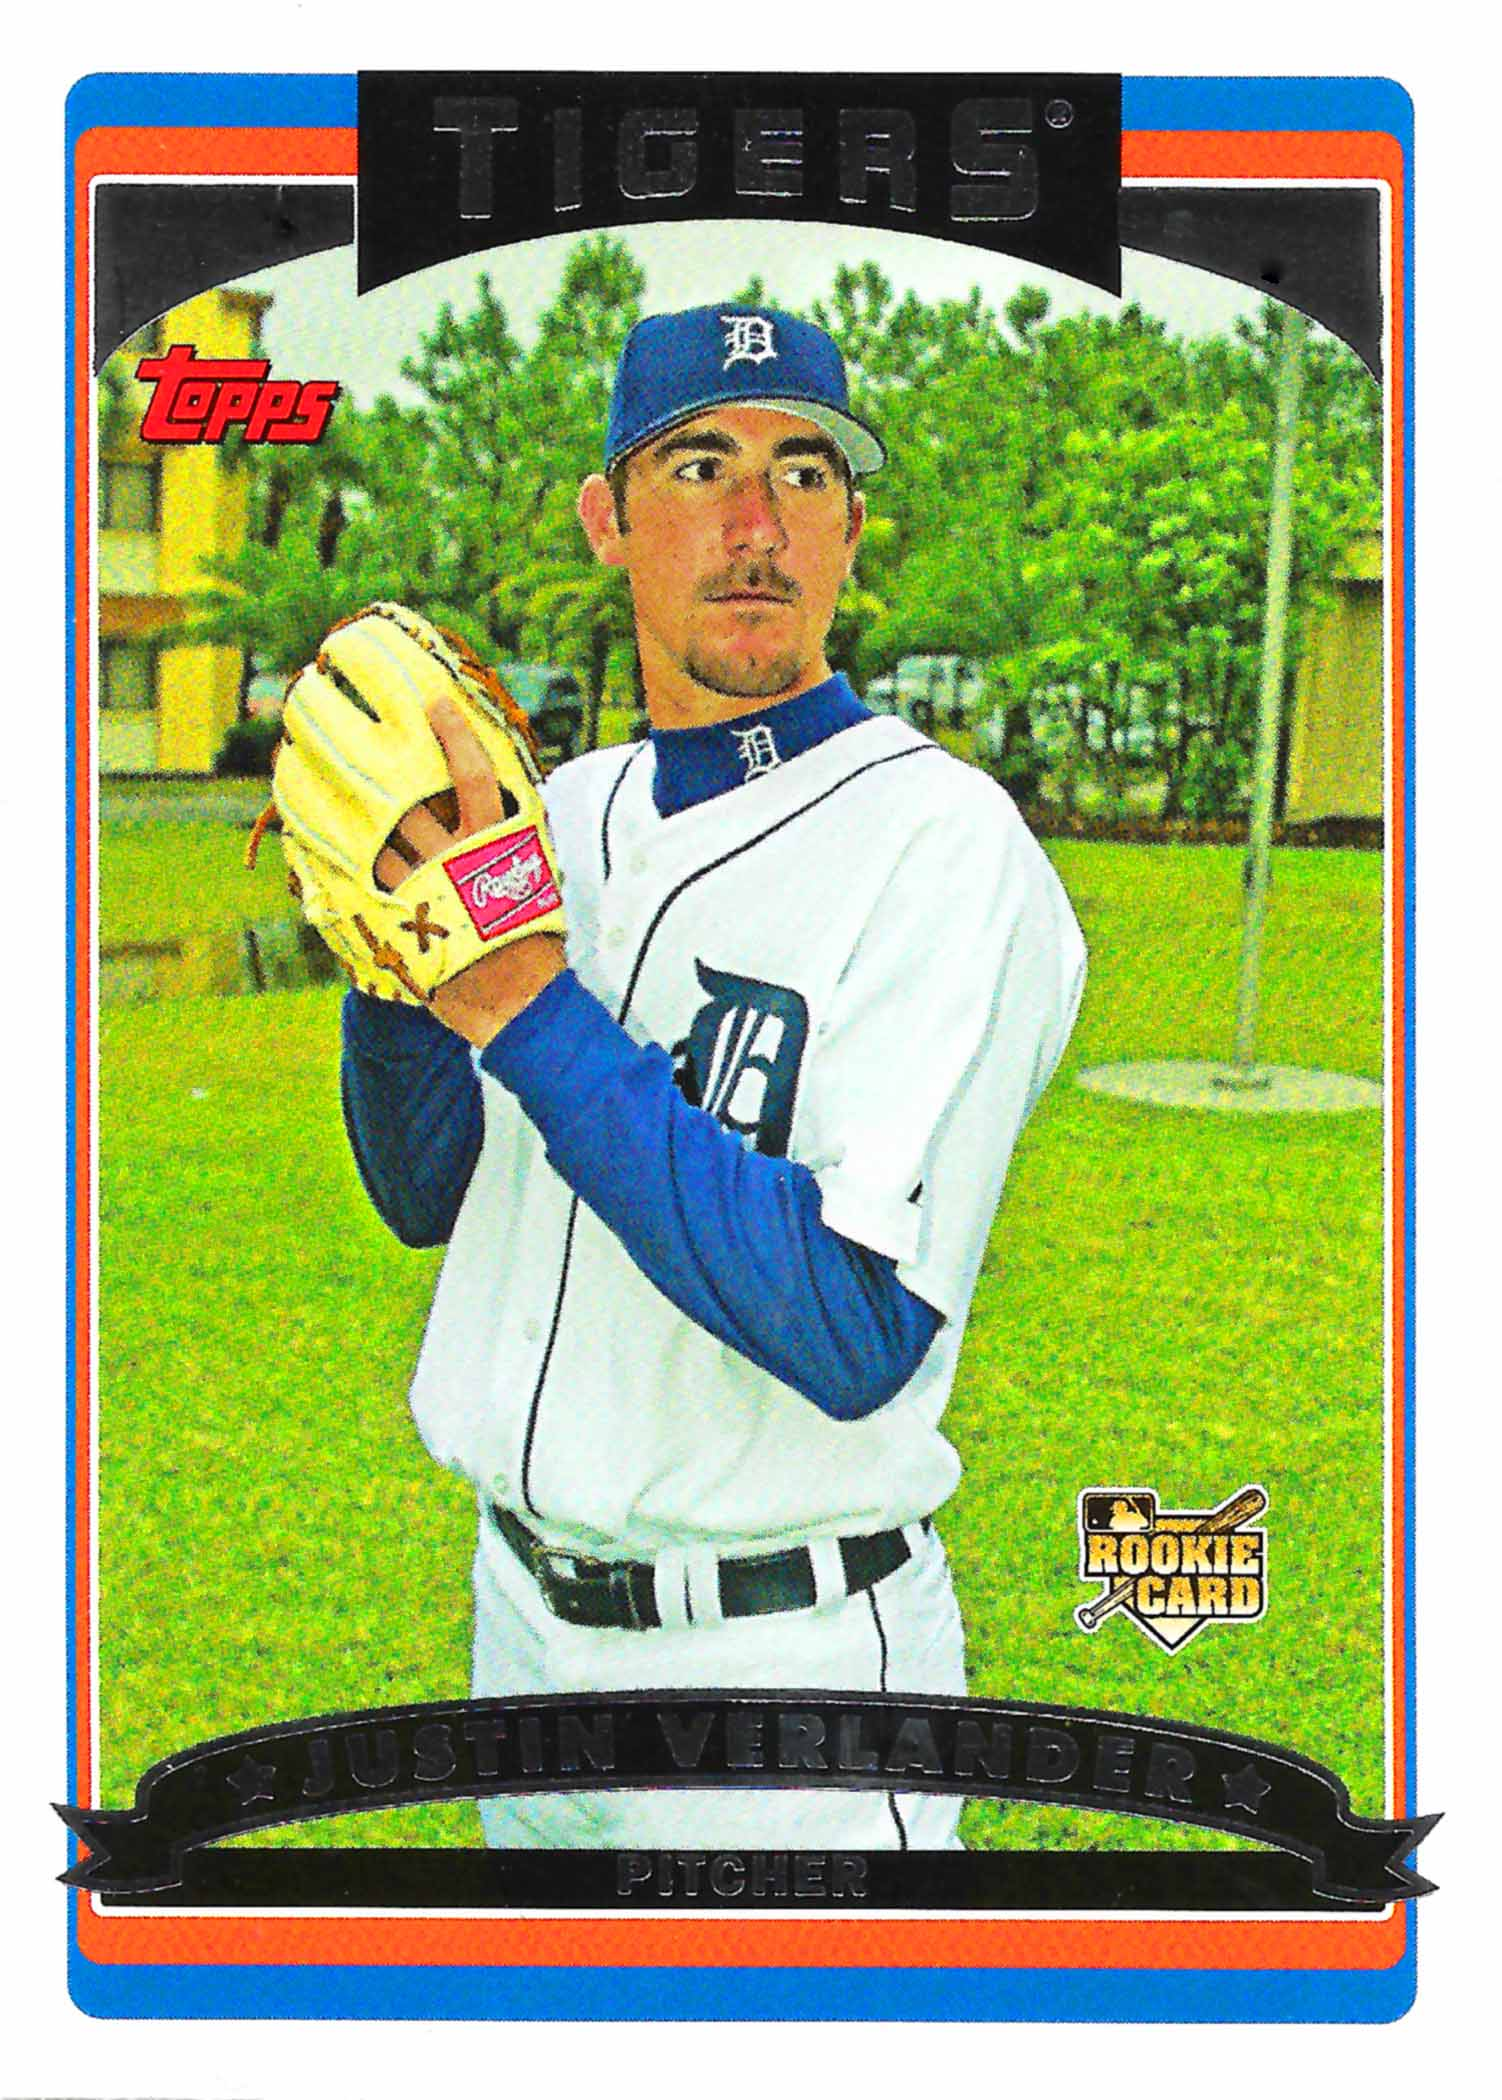 2005 Topps Update Futures Game All-Star